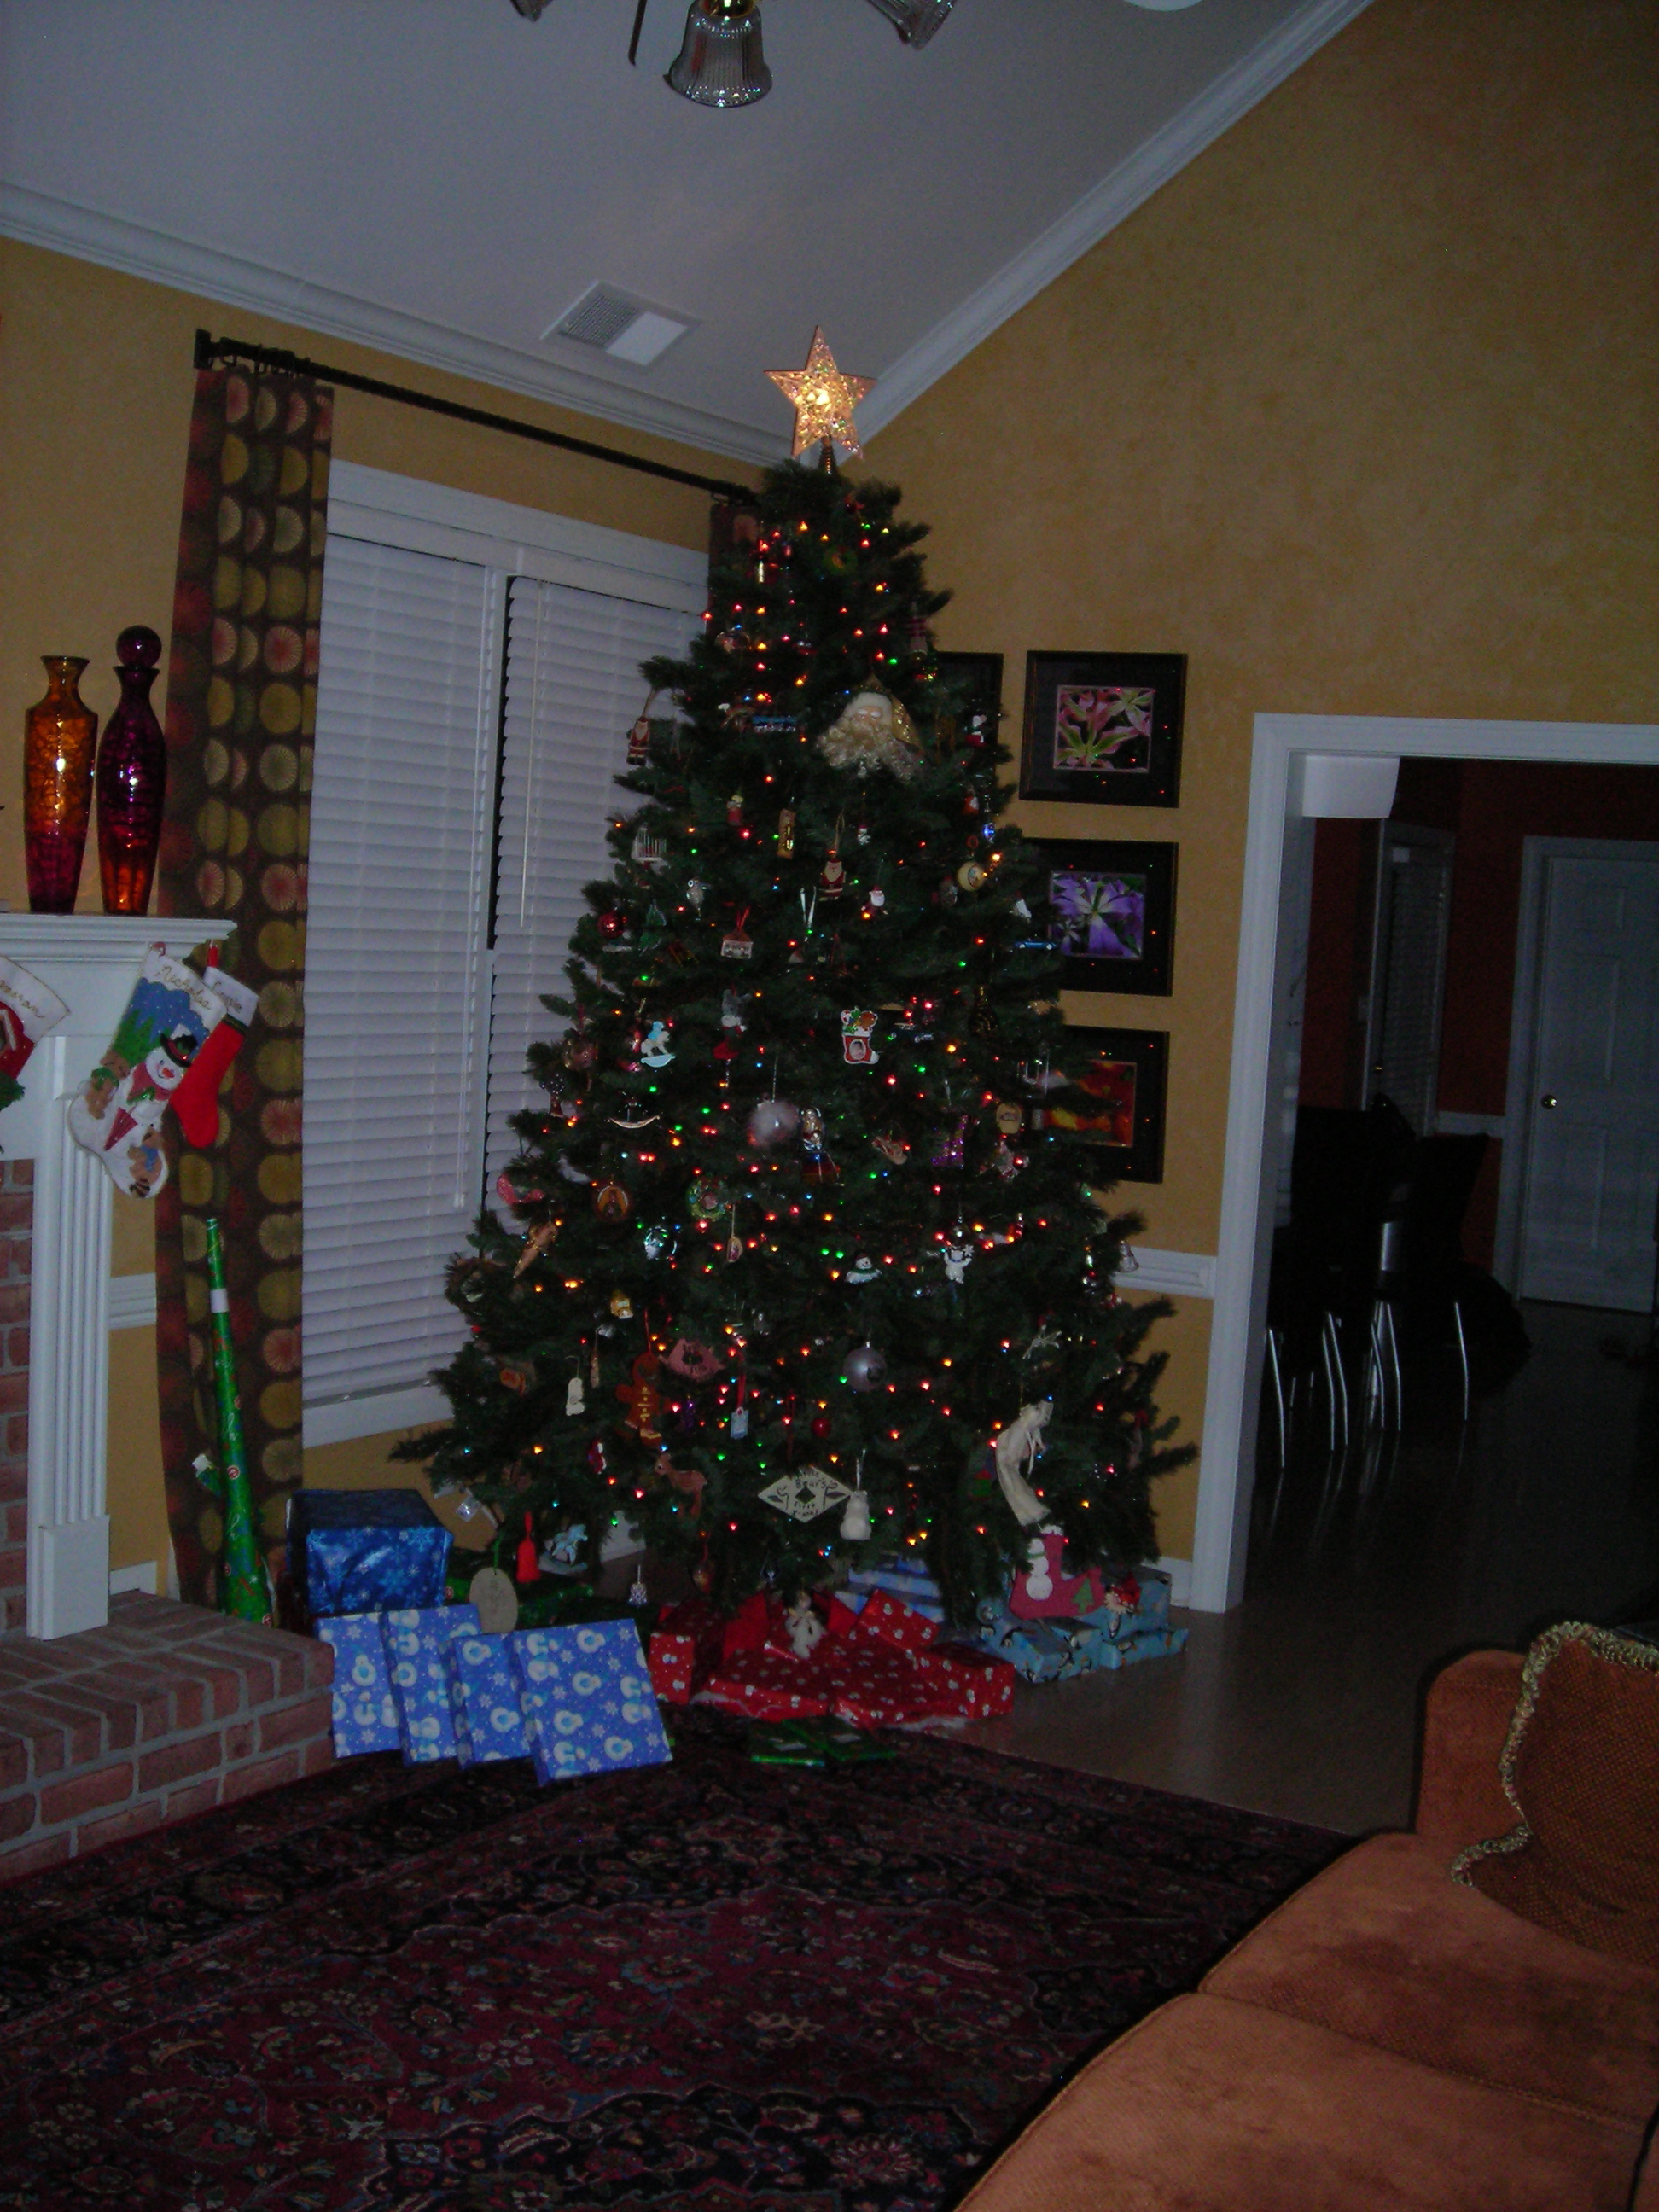 What day to take christmas decor down - So For Most Of The Time The Christmas Tree Was Up In Our Home Either Before Or After Christmas It Wasn T Filled With Presents Except For Christmas Day